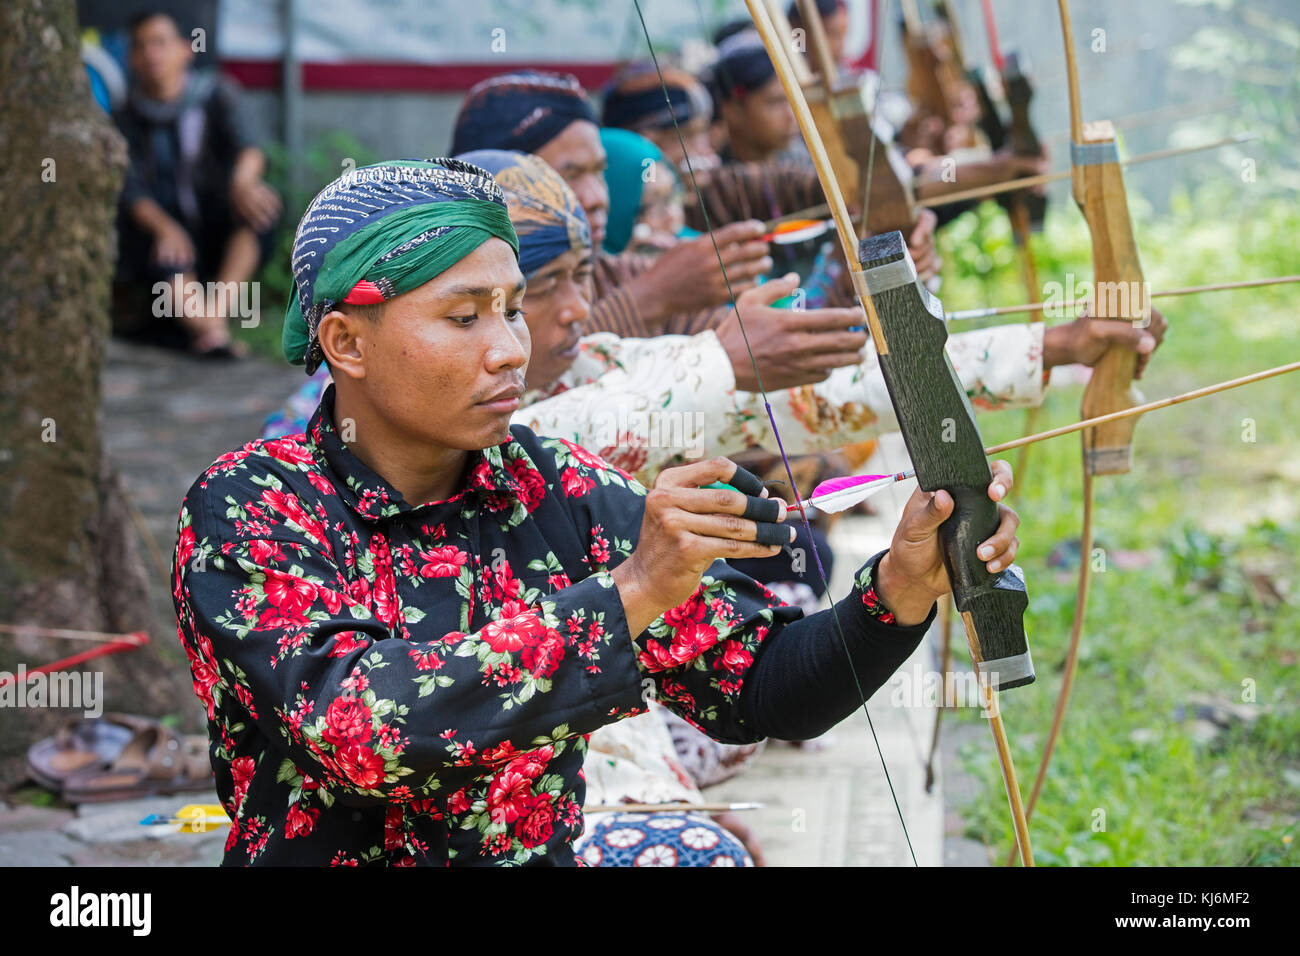 Indonesian men practicing Jemparingan / traditional Javanese archery by shooting bow and arrows in the city Yogyakarta, - Stock Image